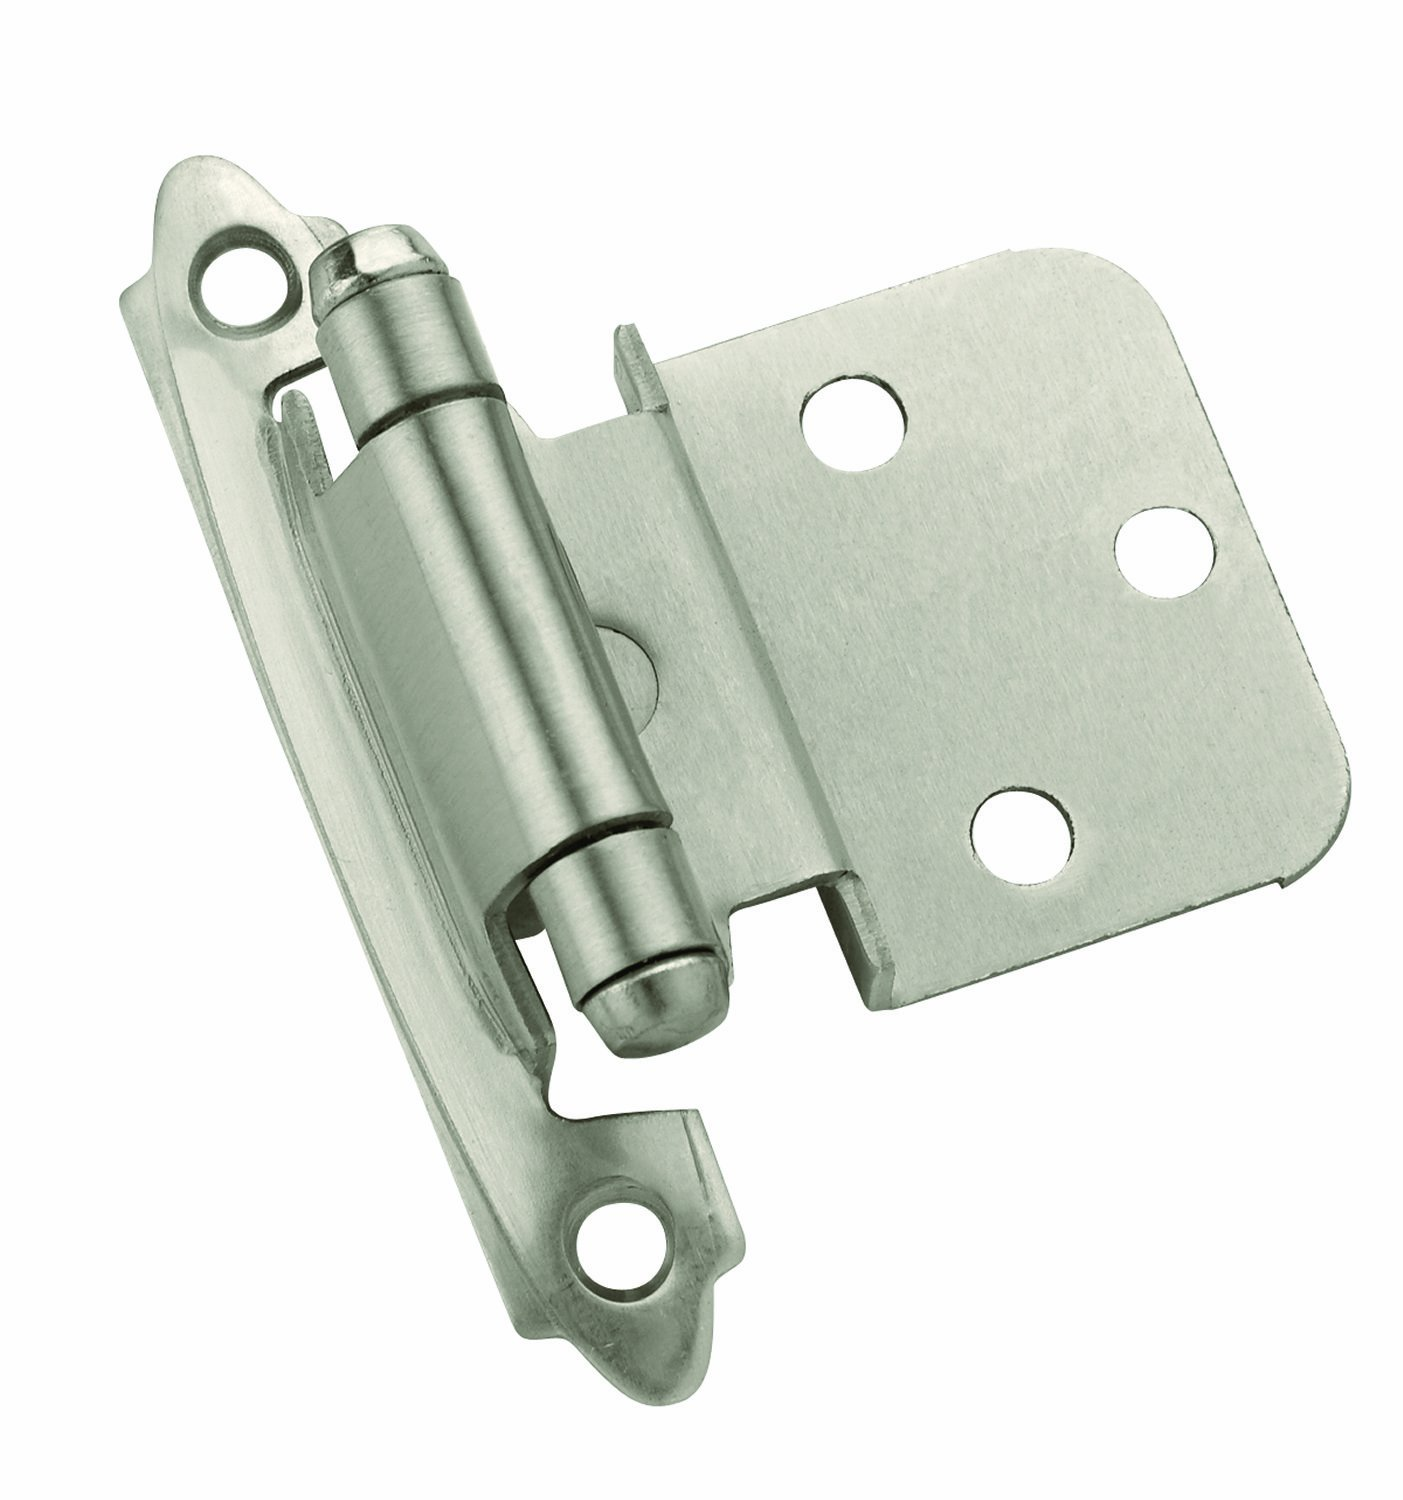 Amerock TEN3428G10 Self Closing Face Mount Hinge with 3 8in 10mm Inset Satin Nickel 10 Pack